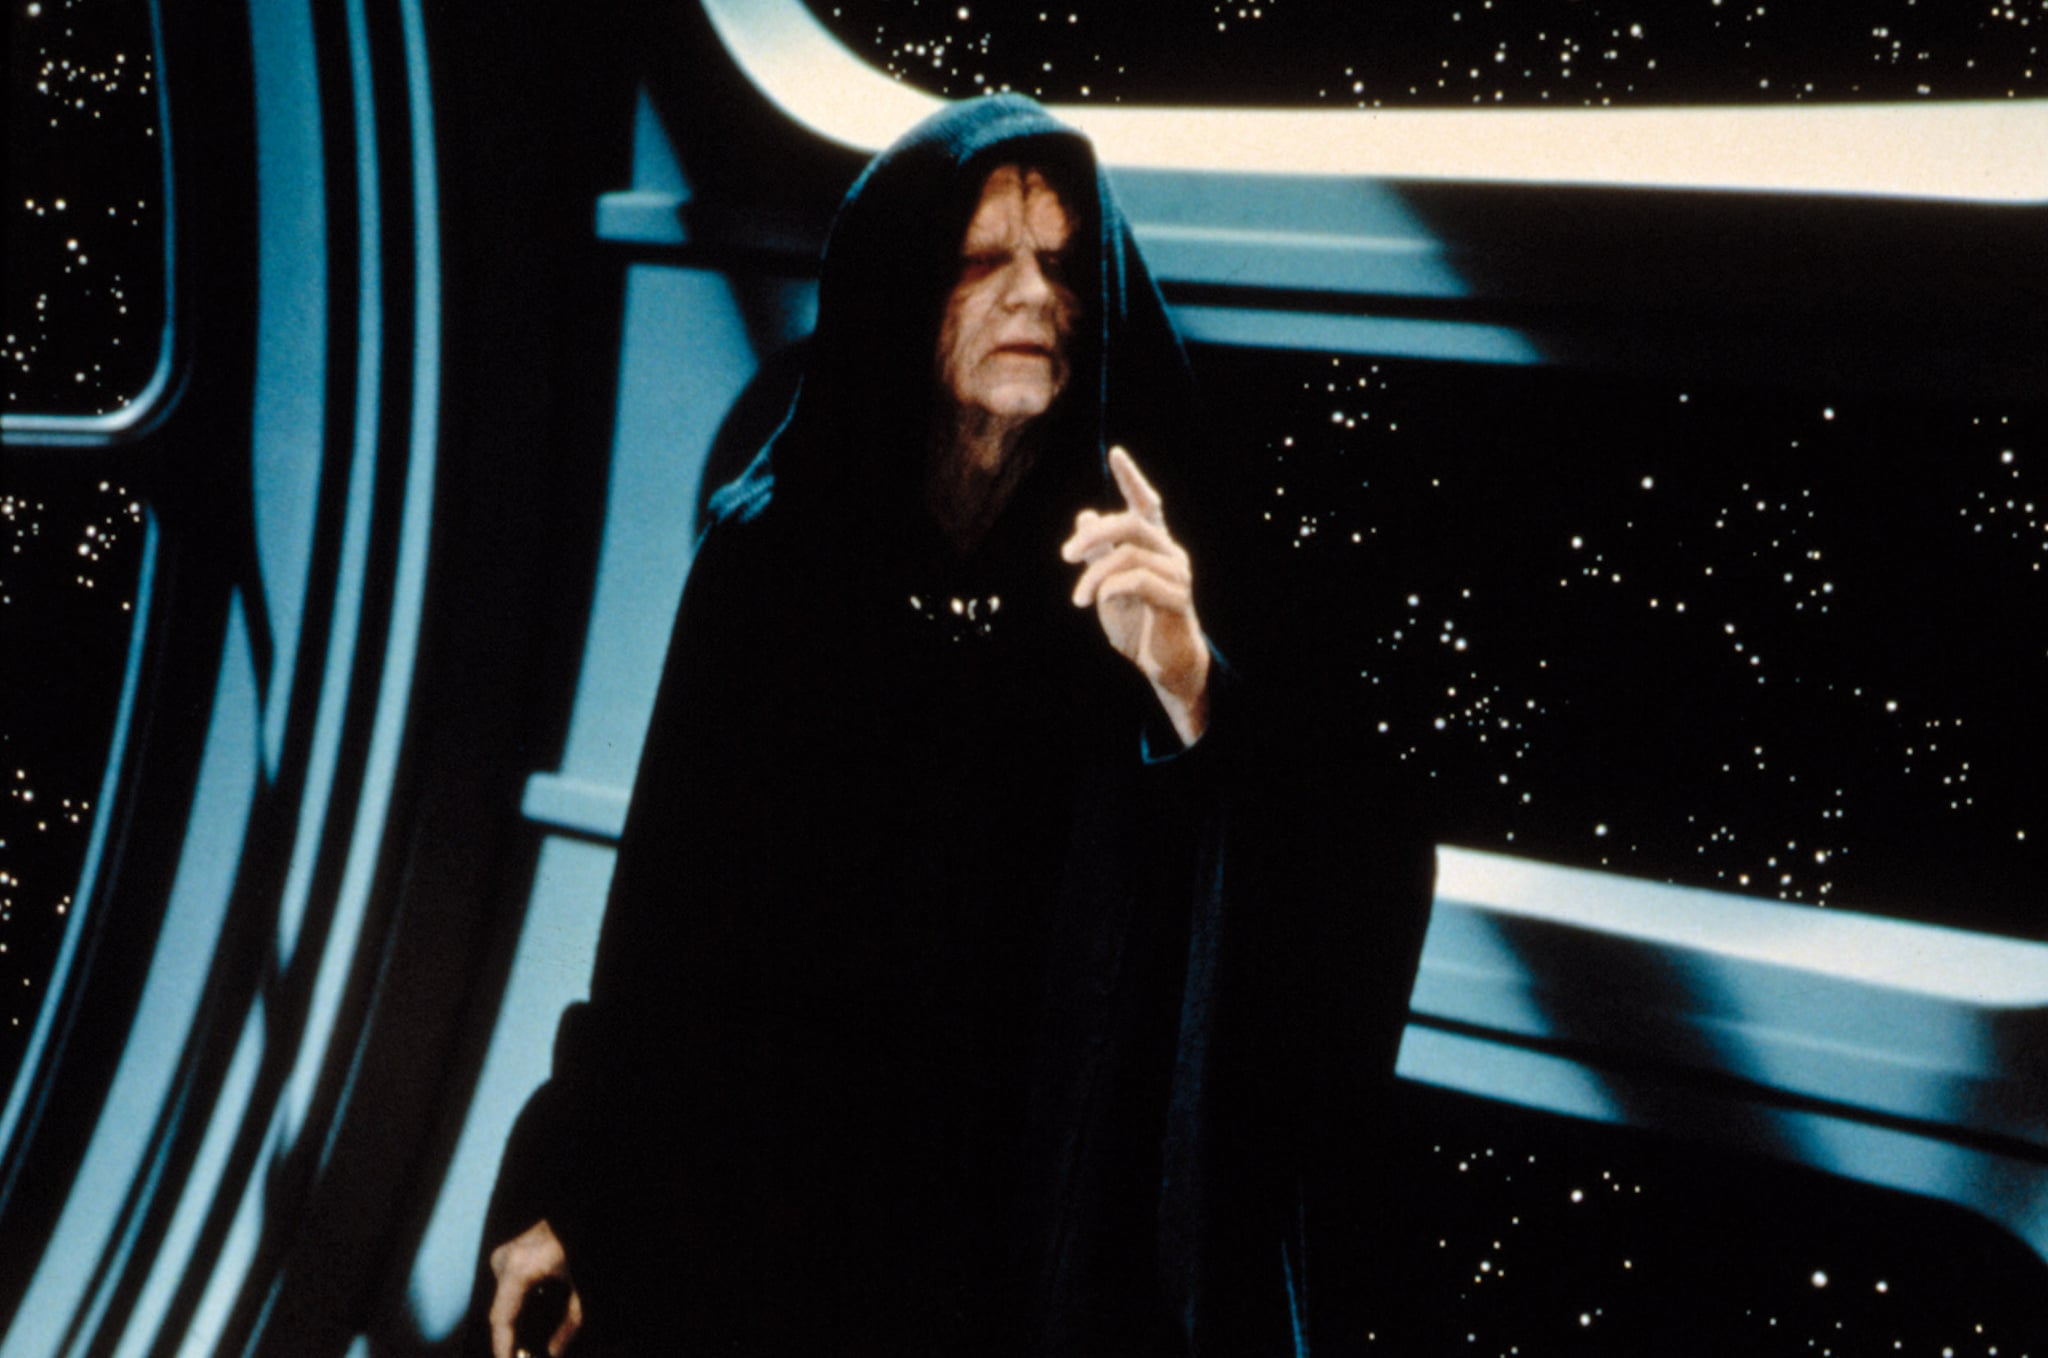 STAR WARS: EPISODE VI - RETURN OF THE JEDI, Ian McDiarmid, 1983.